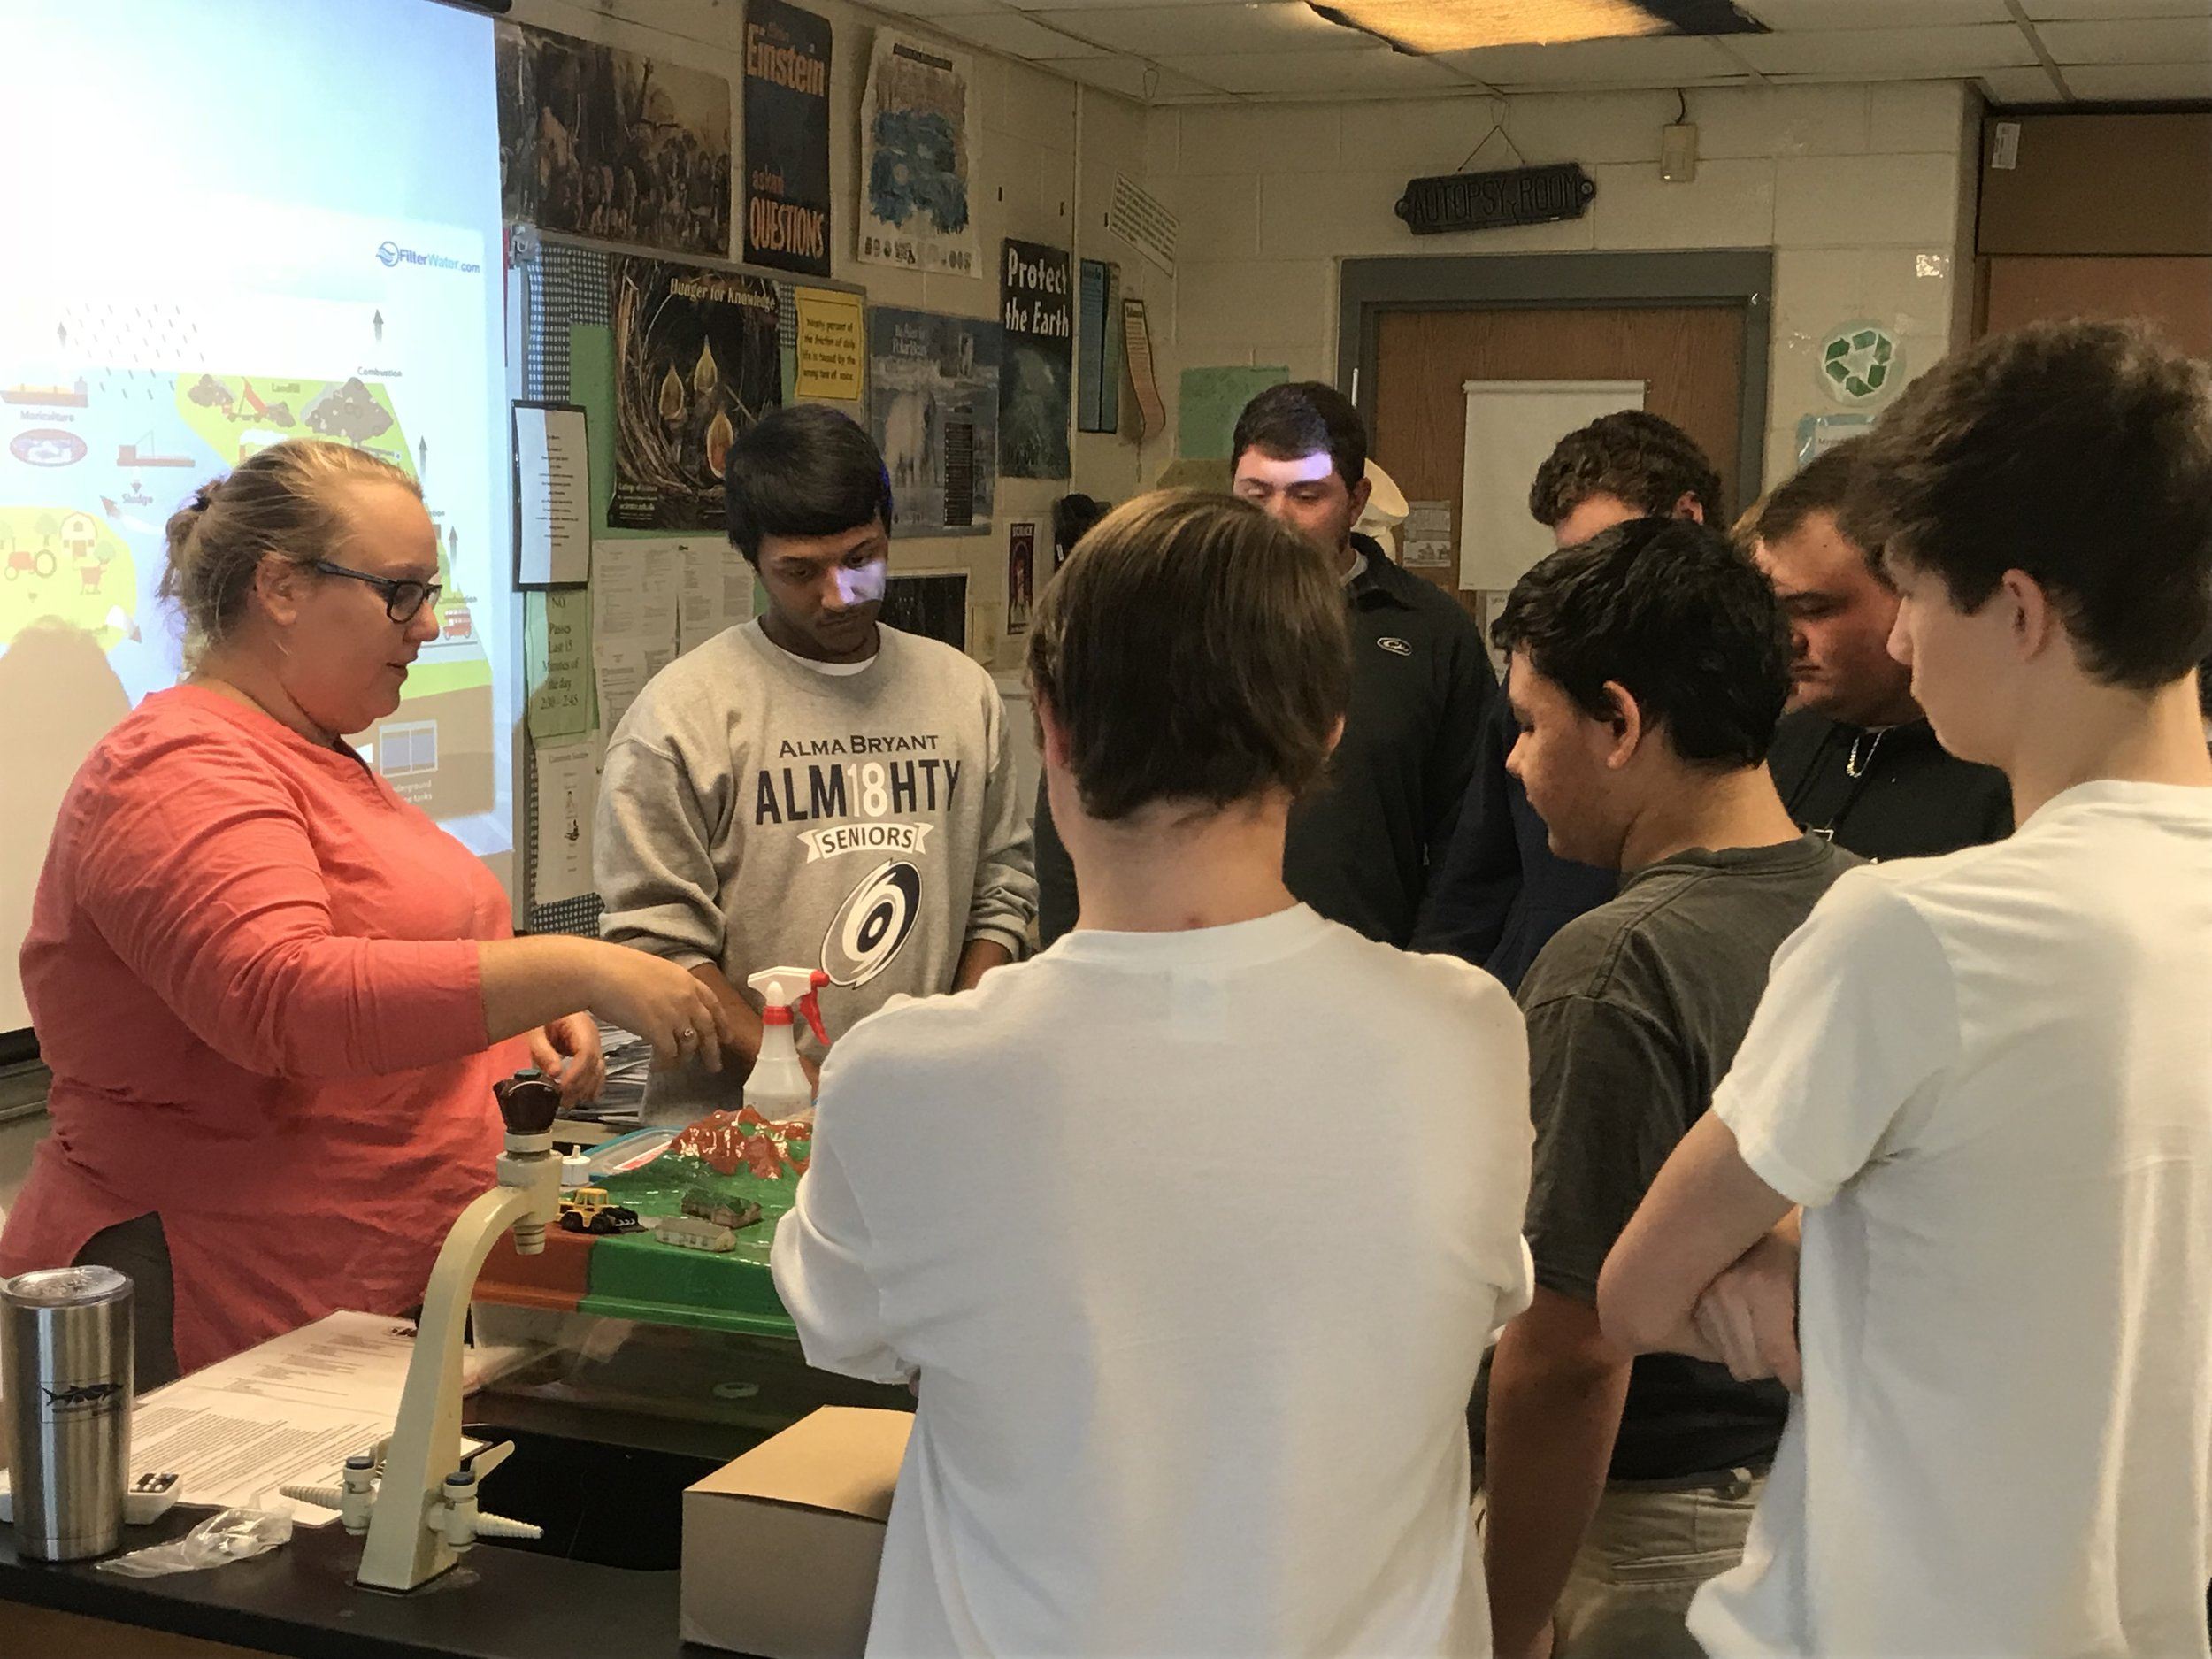 Local students from Alma Bryant High School learn about watersheds through the water table demonstration.